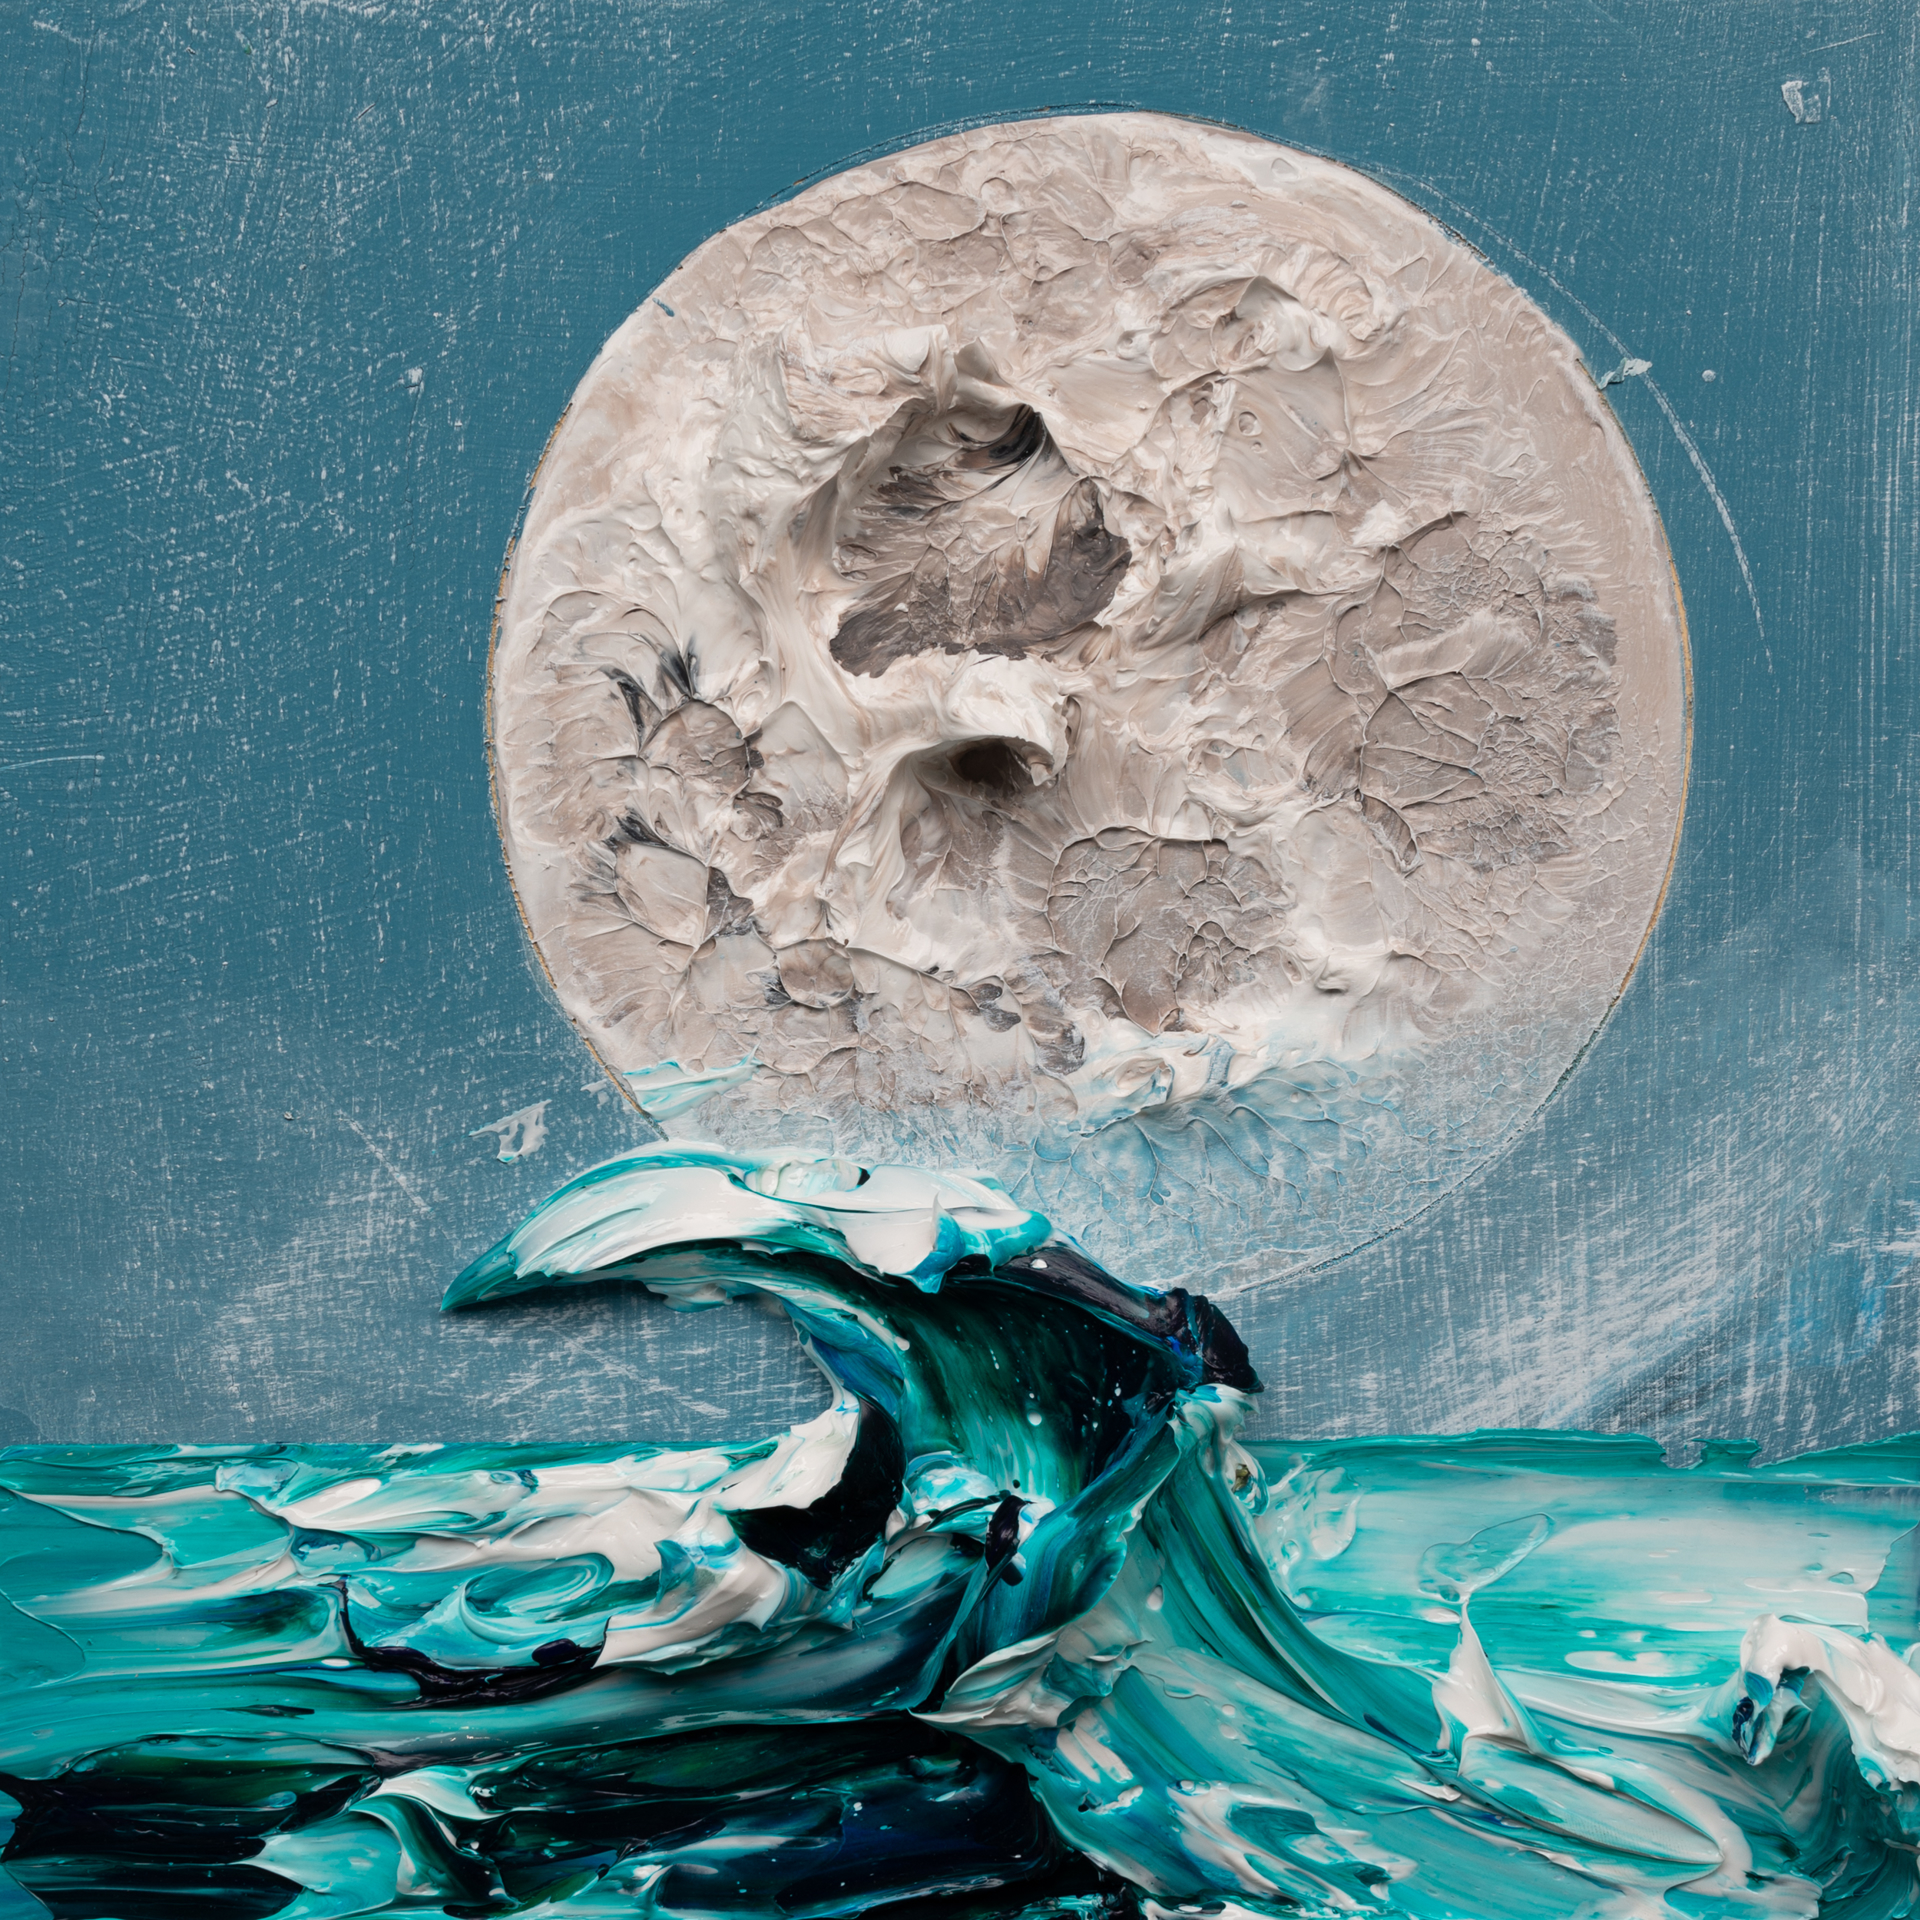 (SOLD) MOONSCAPE MS-12X12-2019-319 by JUSTIN GAFFREY